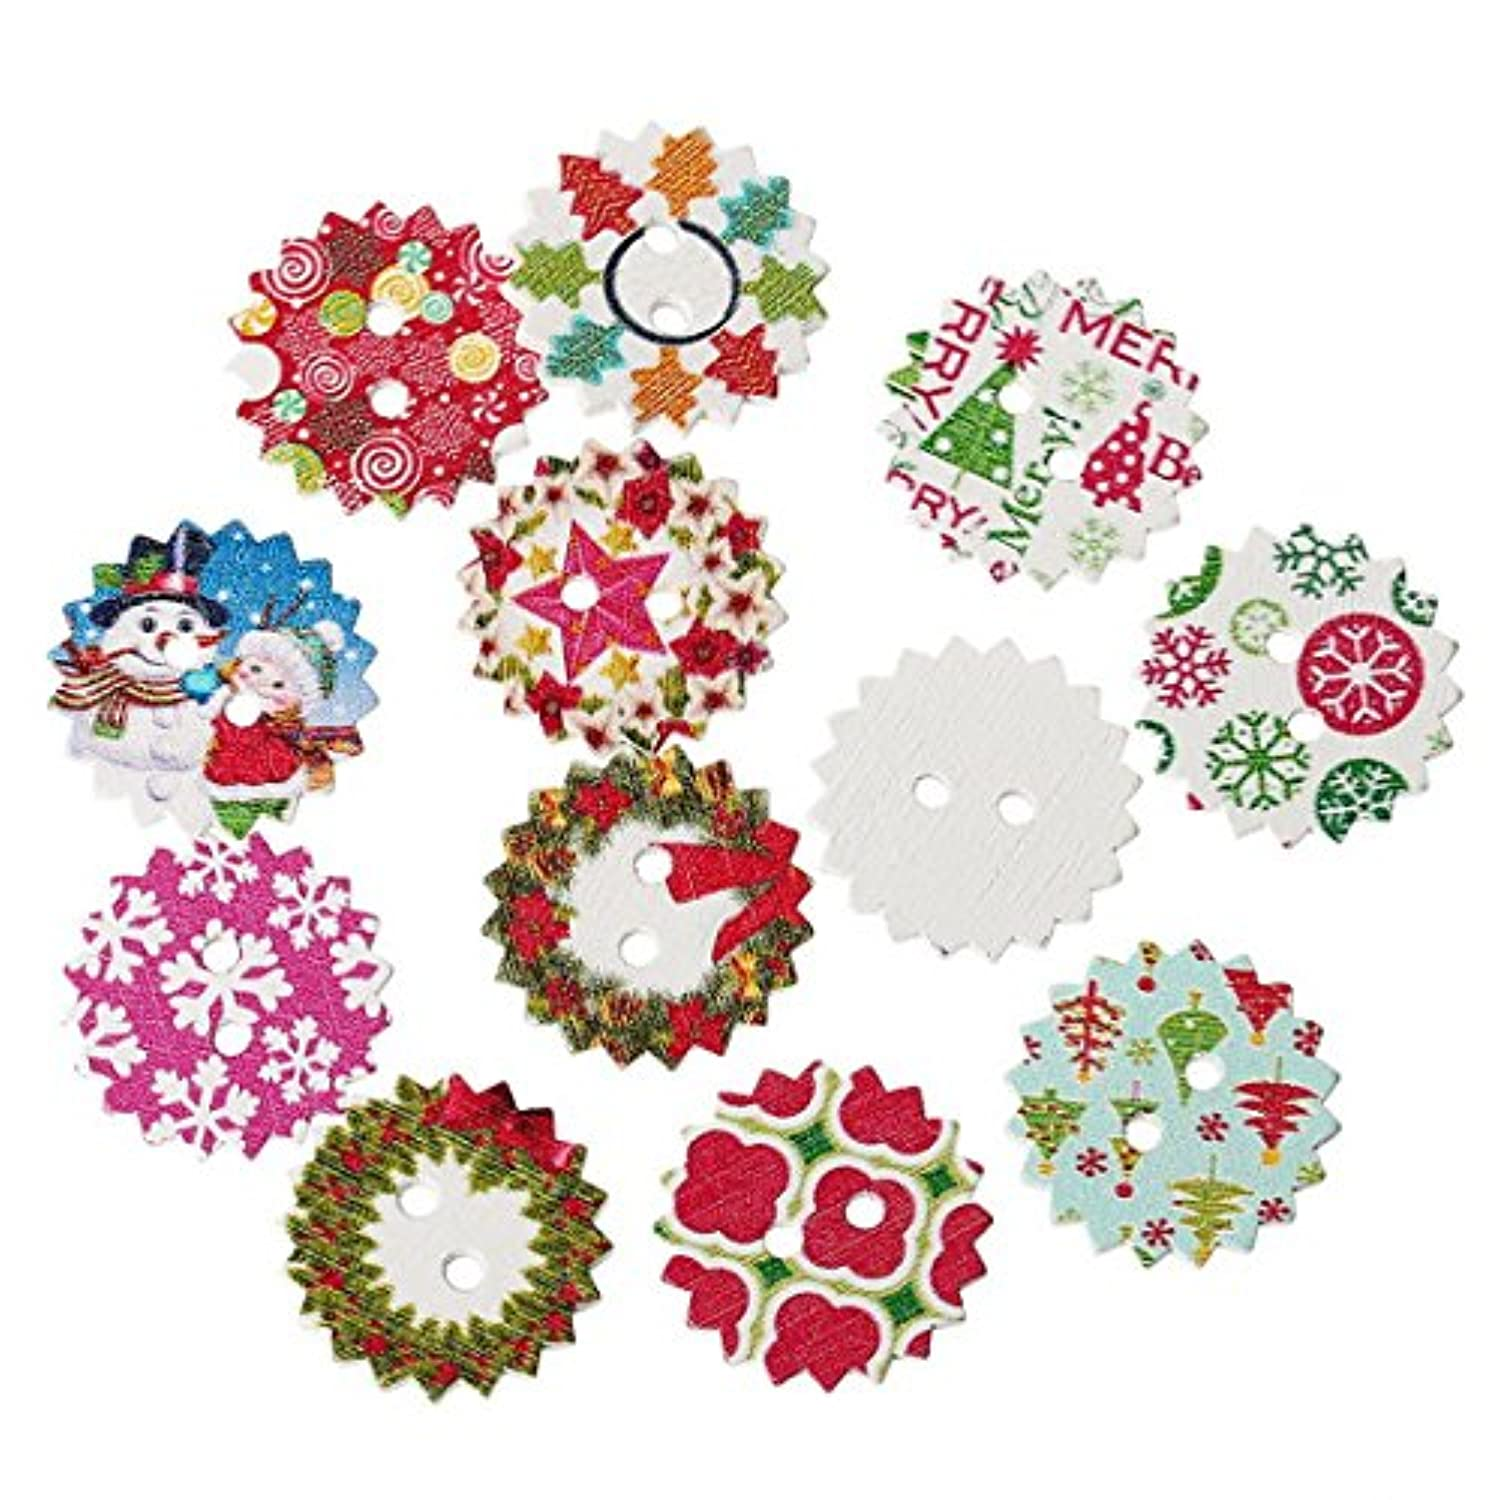 Souarts 24mm Pack of 100pcs Random Mixed Christmas Pattern Printed Round 2 Holes Wood Wooden Buttons